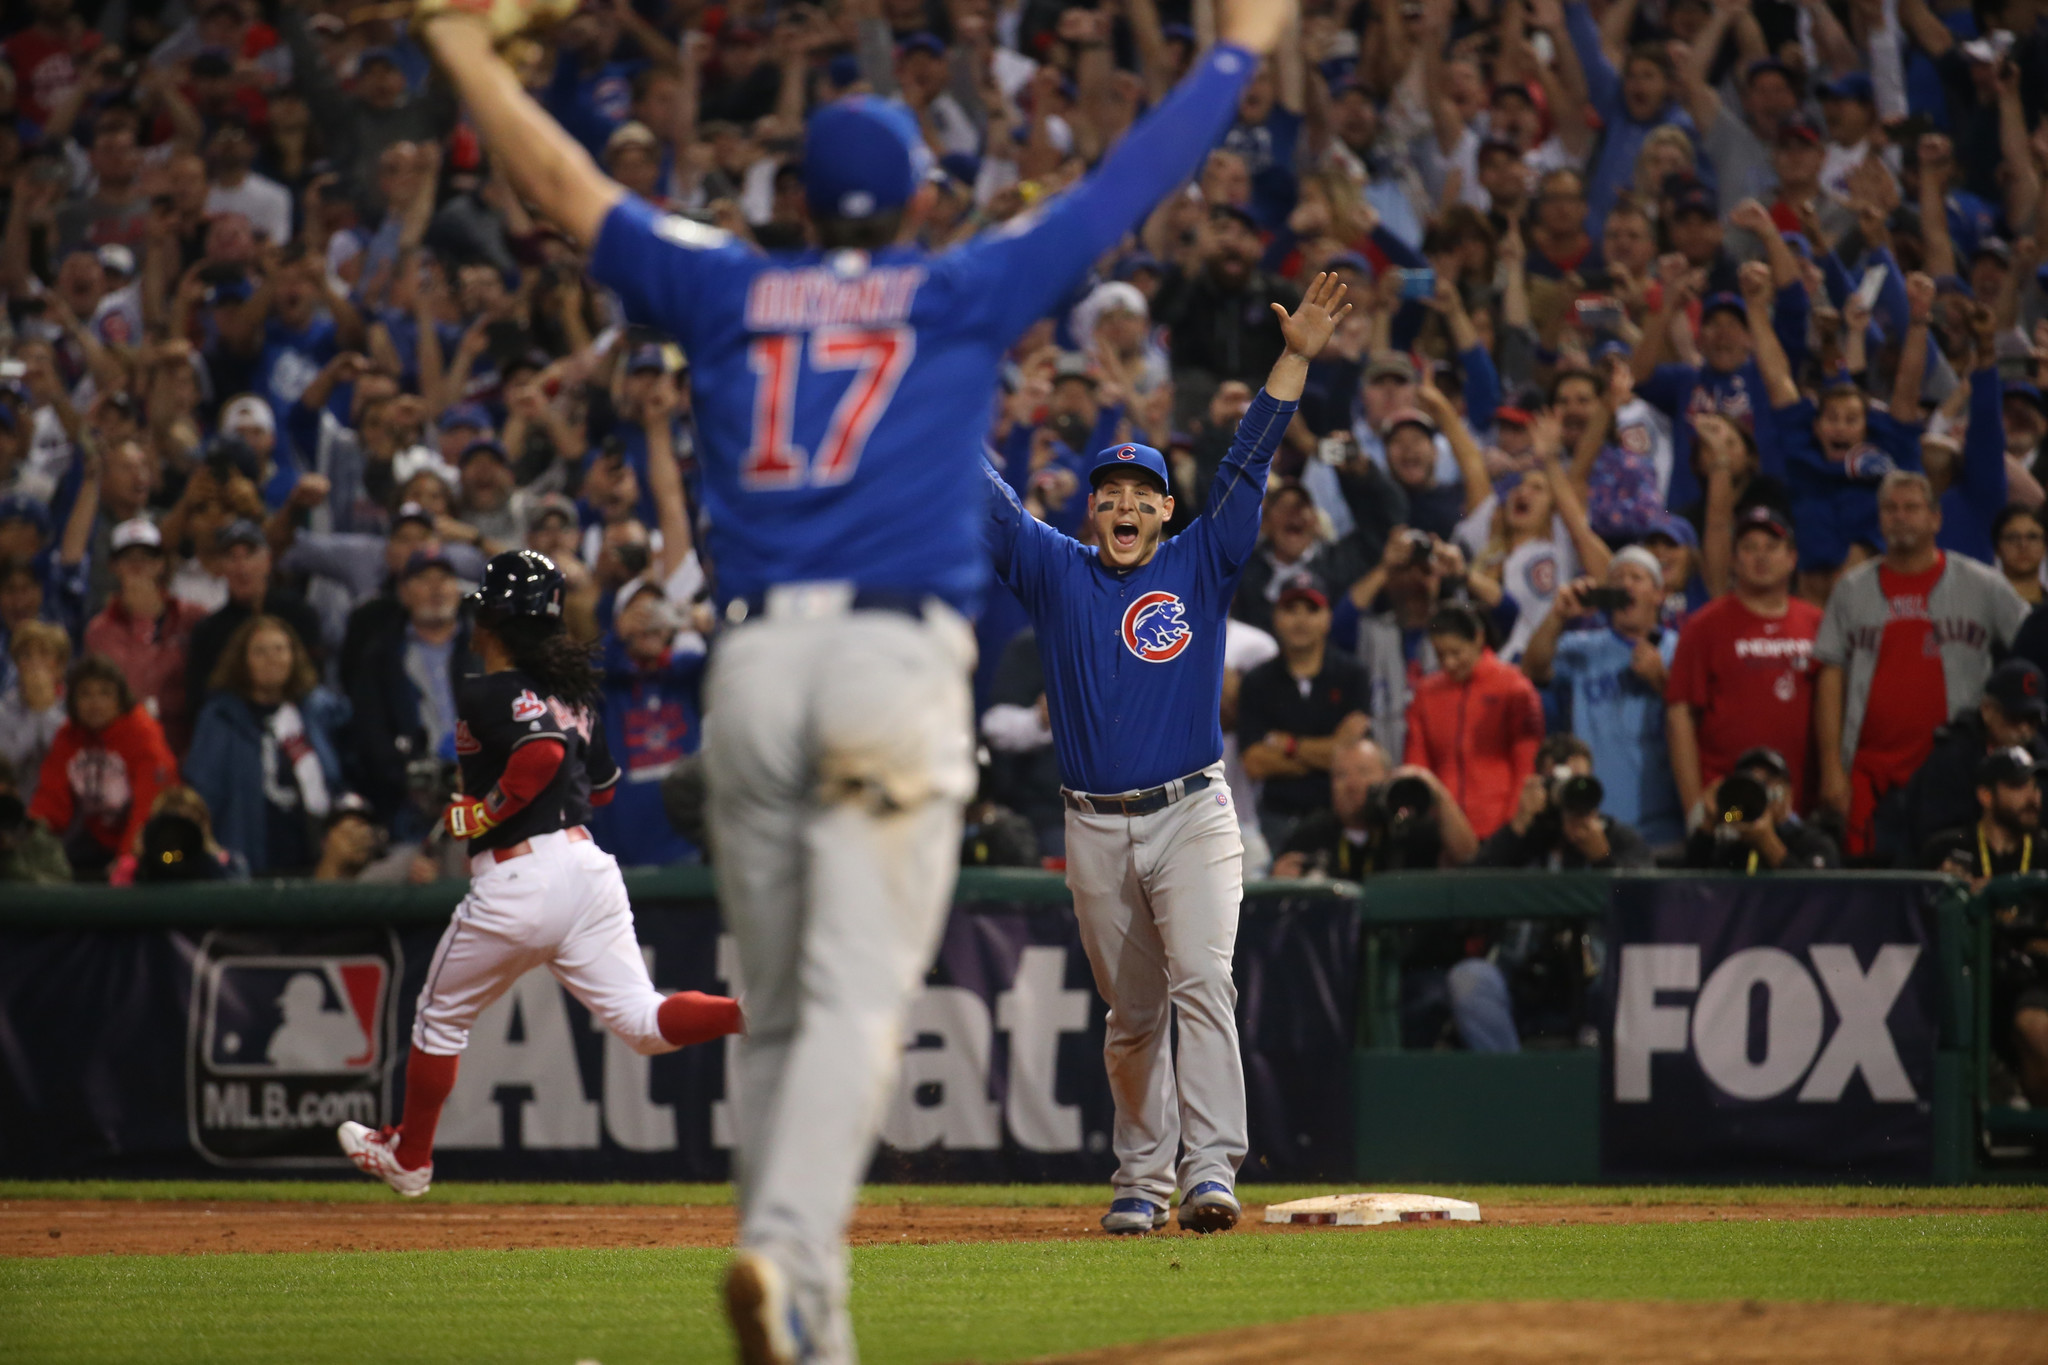 Chicago Cubs win World Series championship with 87